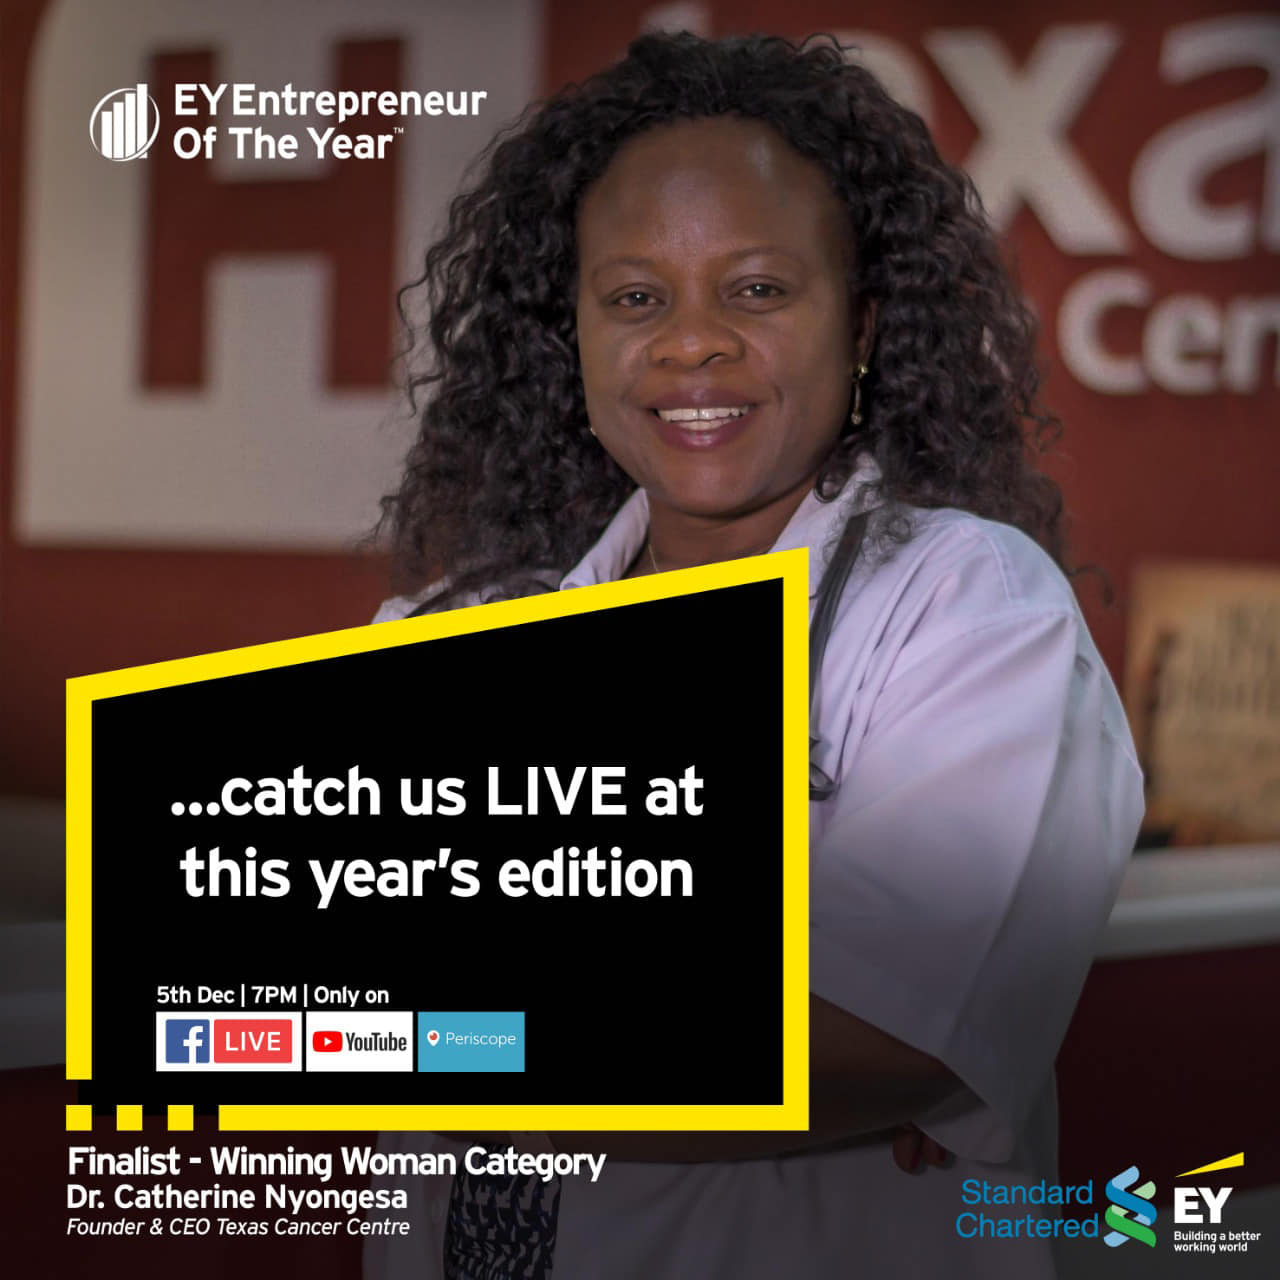 EY Entrepreneur of the year _Finalist